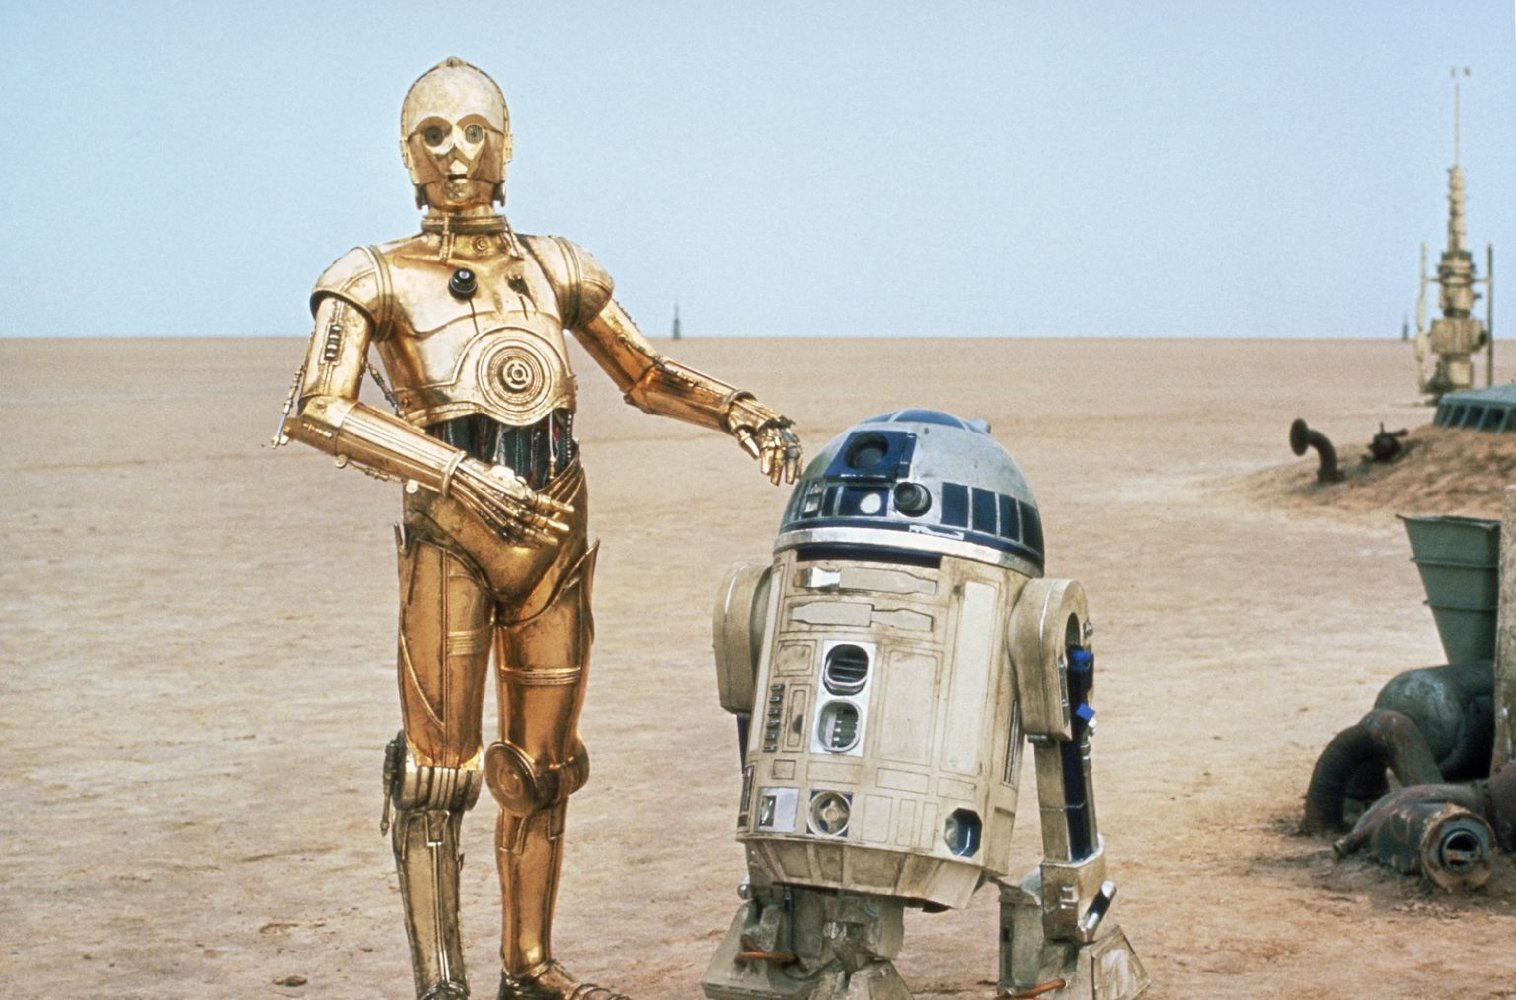 """Star Wars"" robots C-3PO (left) and R2-D2 first appeared in 1977."